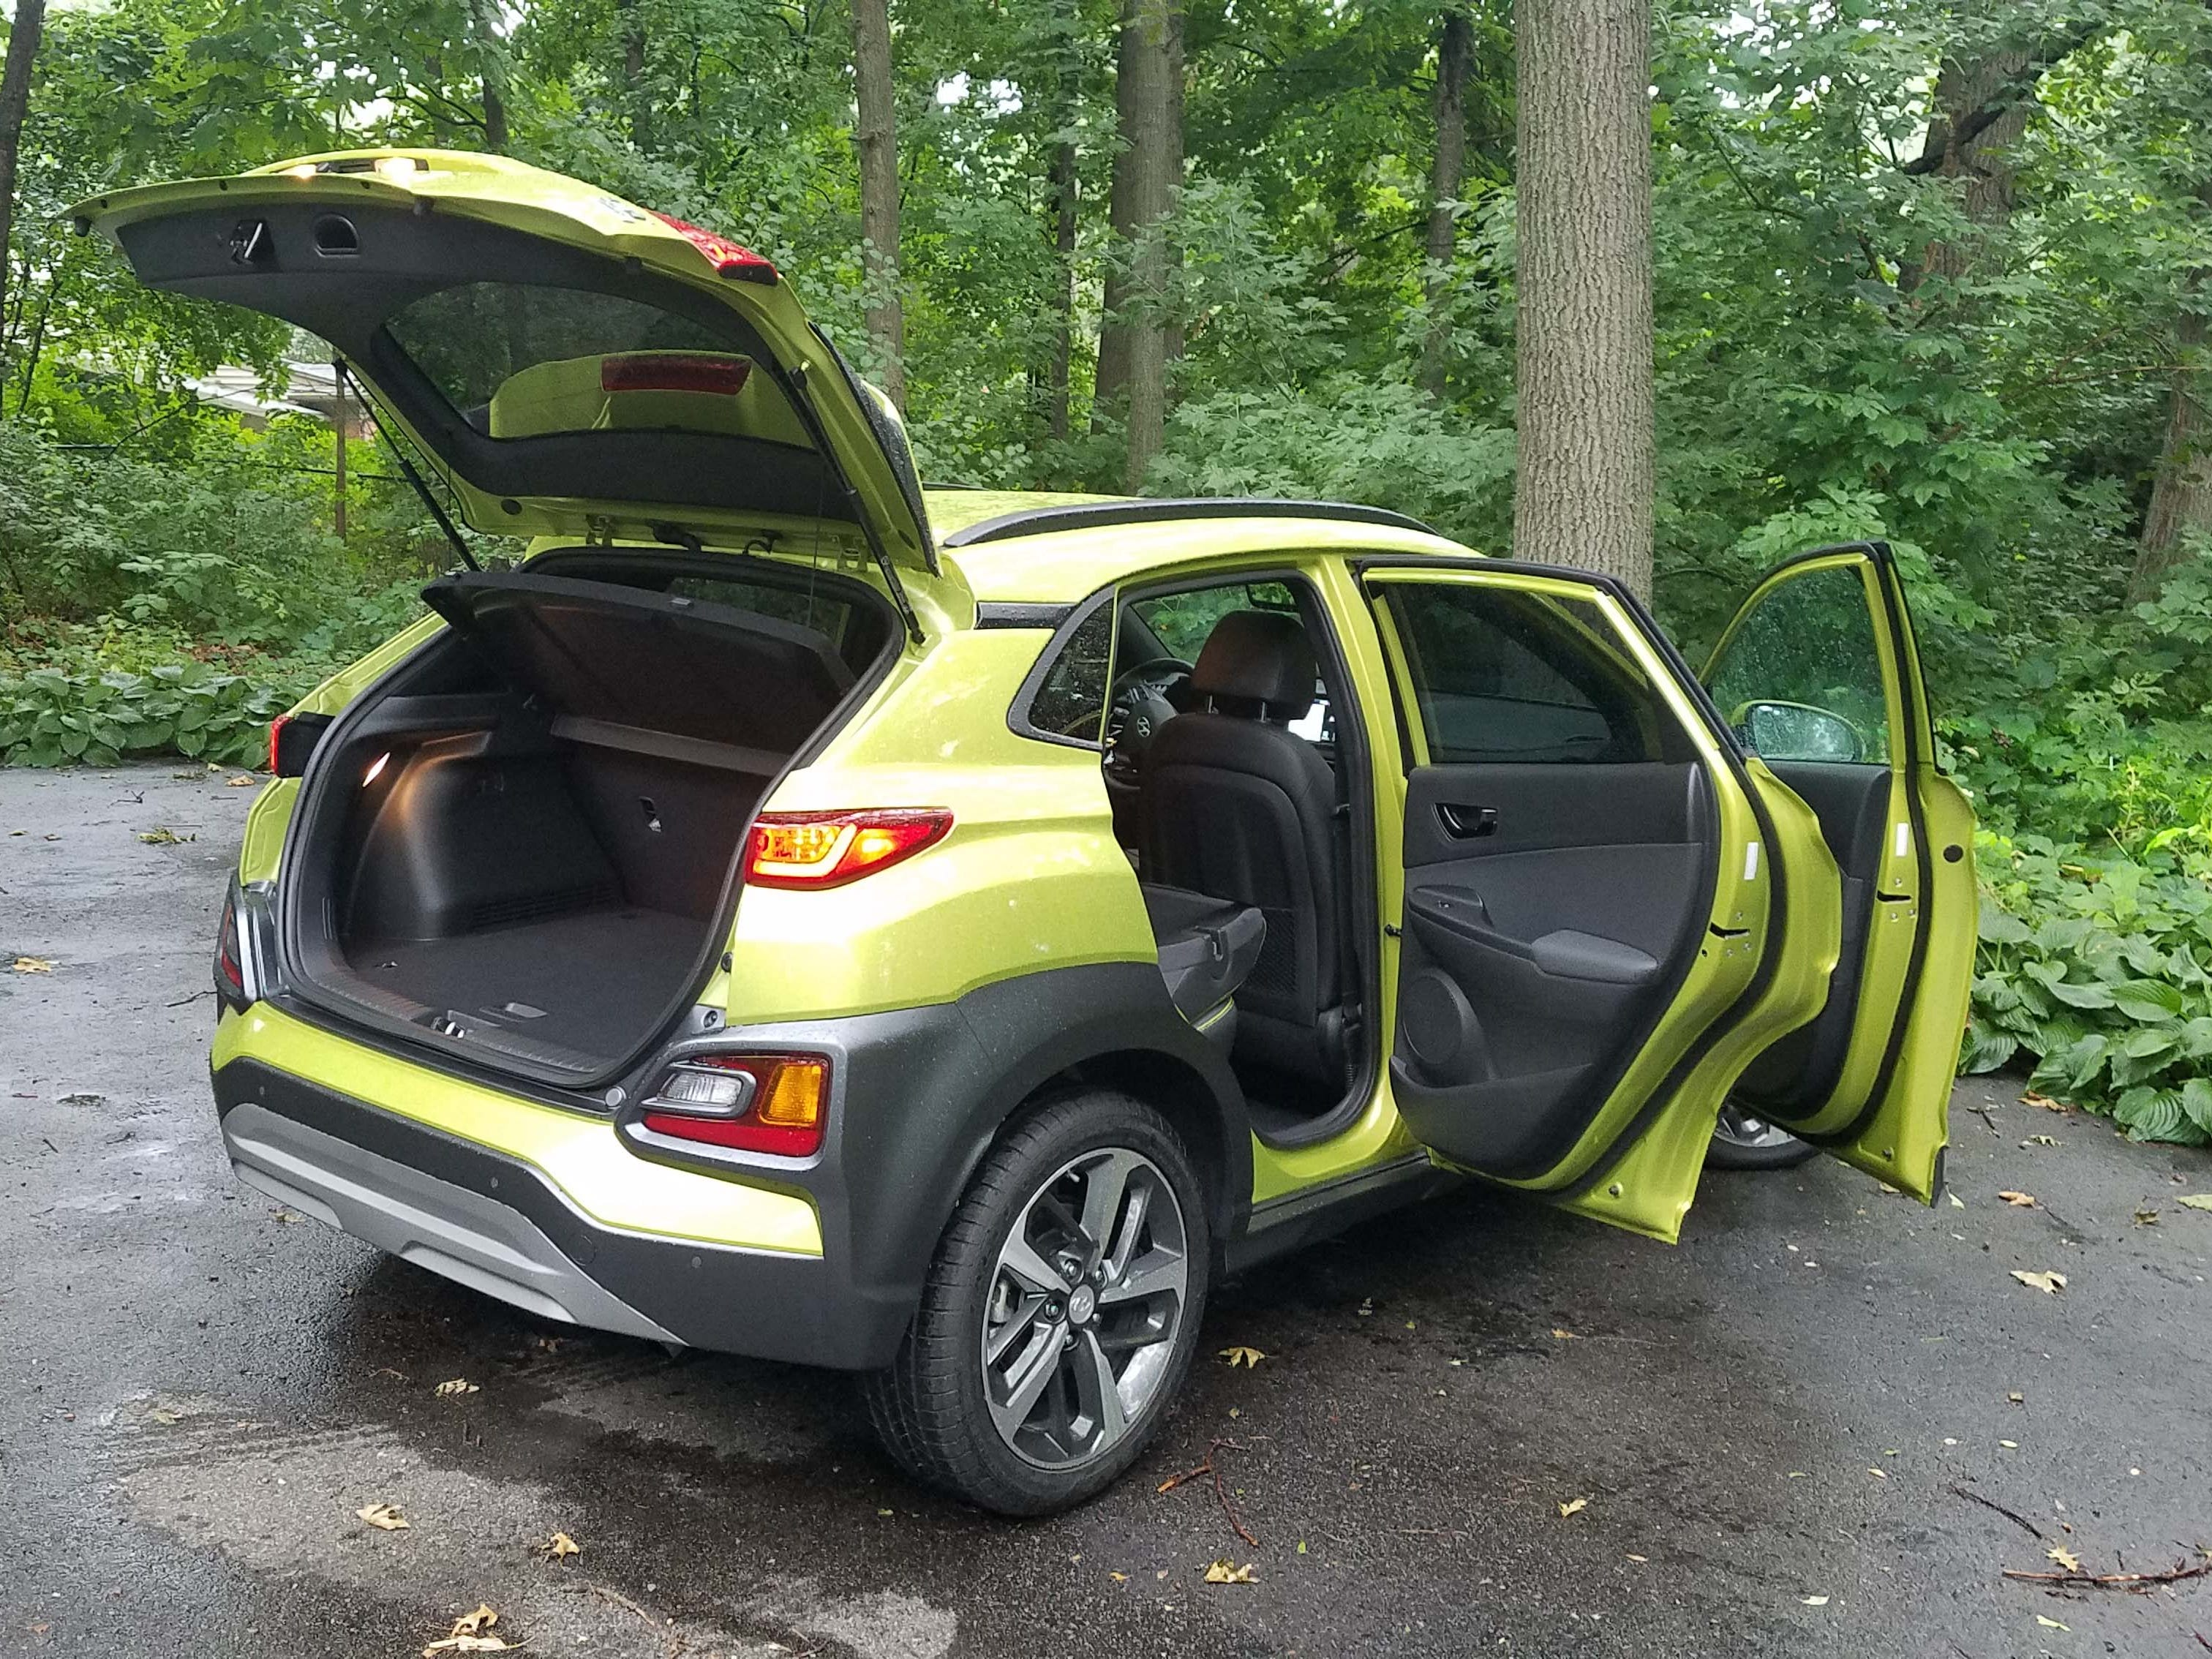 The 2018 Hyundai Kona is a funky five-door ute that joins more conventional-looking subcompacts like the Ford Ecosport, Honda HR-V, Subaru Crosstrek, and Chevy Trax.